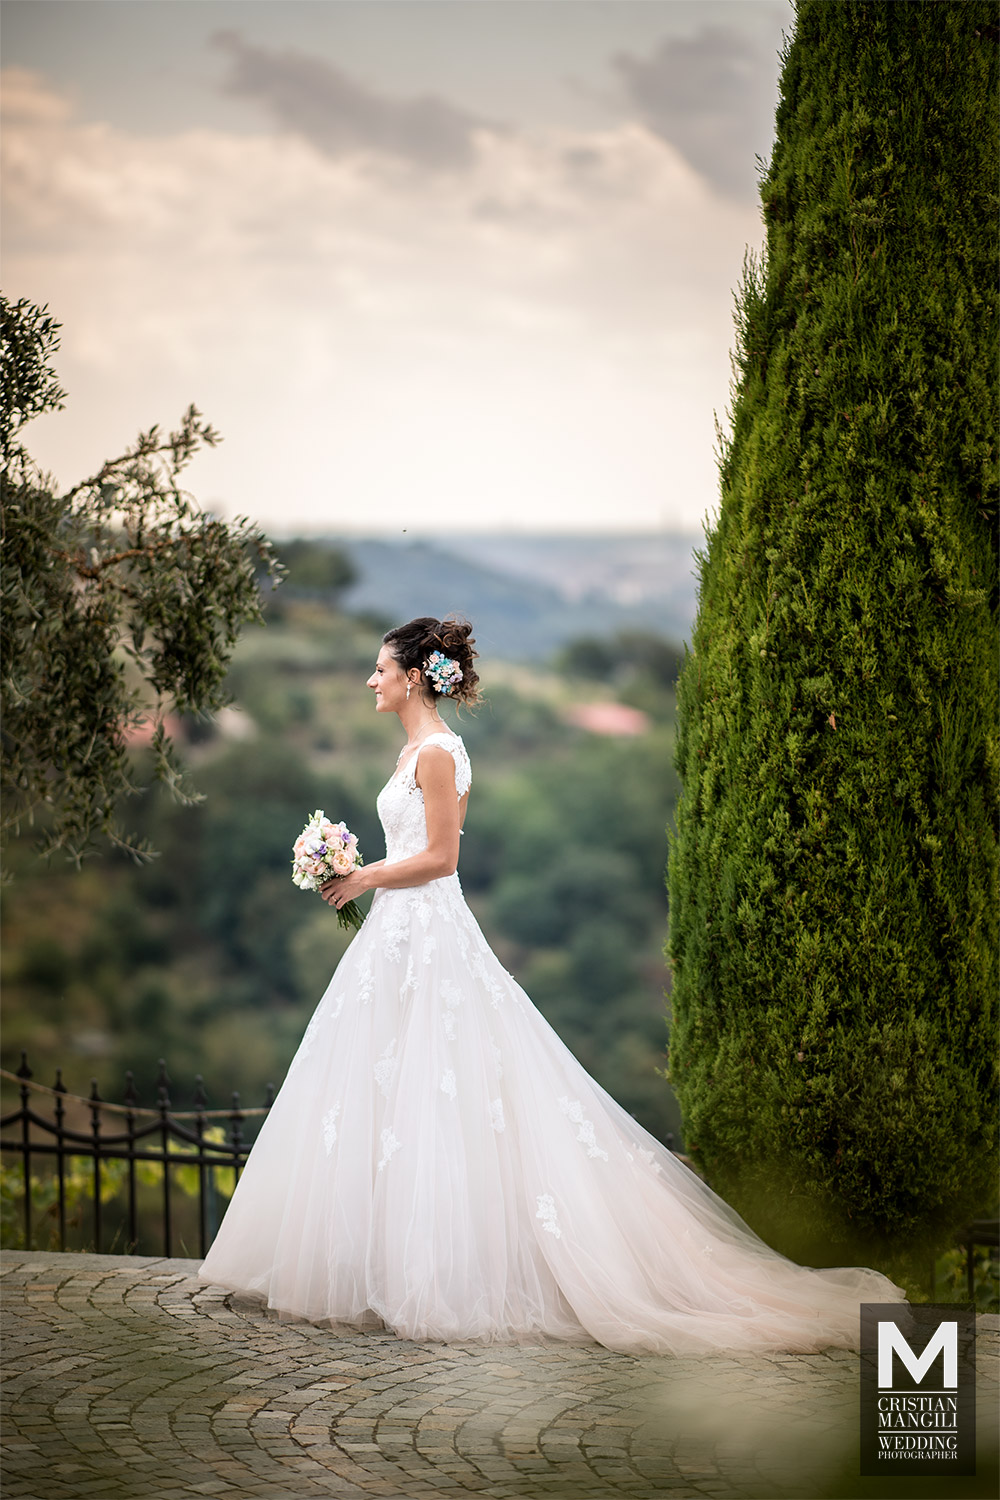 bride-walking-in-franciacorta-wedding-photo